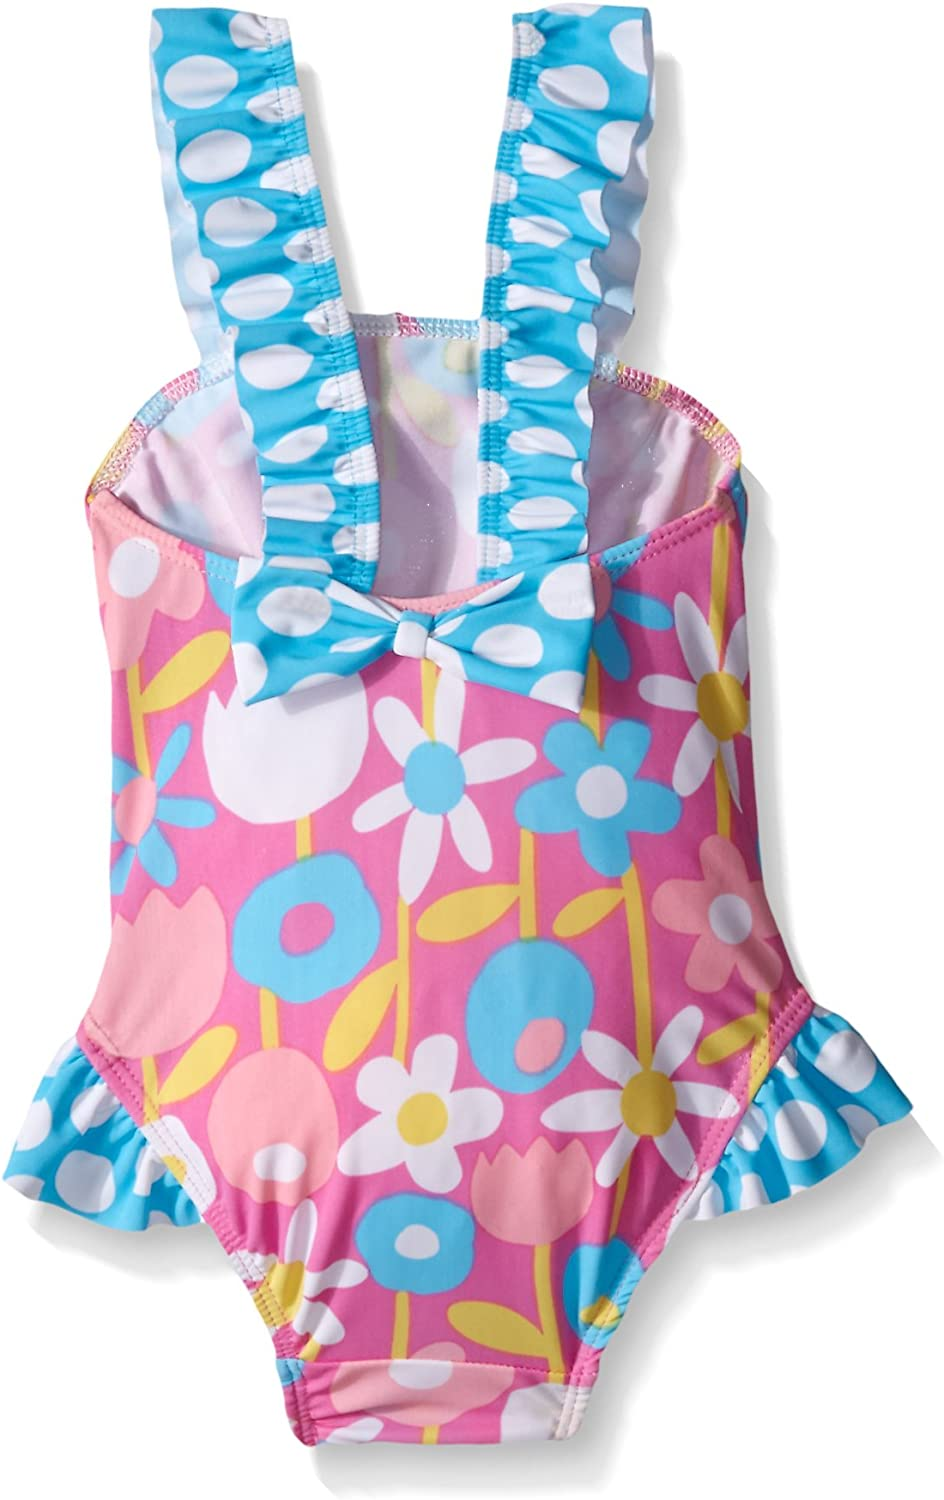 Malia V-Back Swimsuit-Baby Flap Happy Girls UPF 50